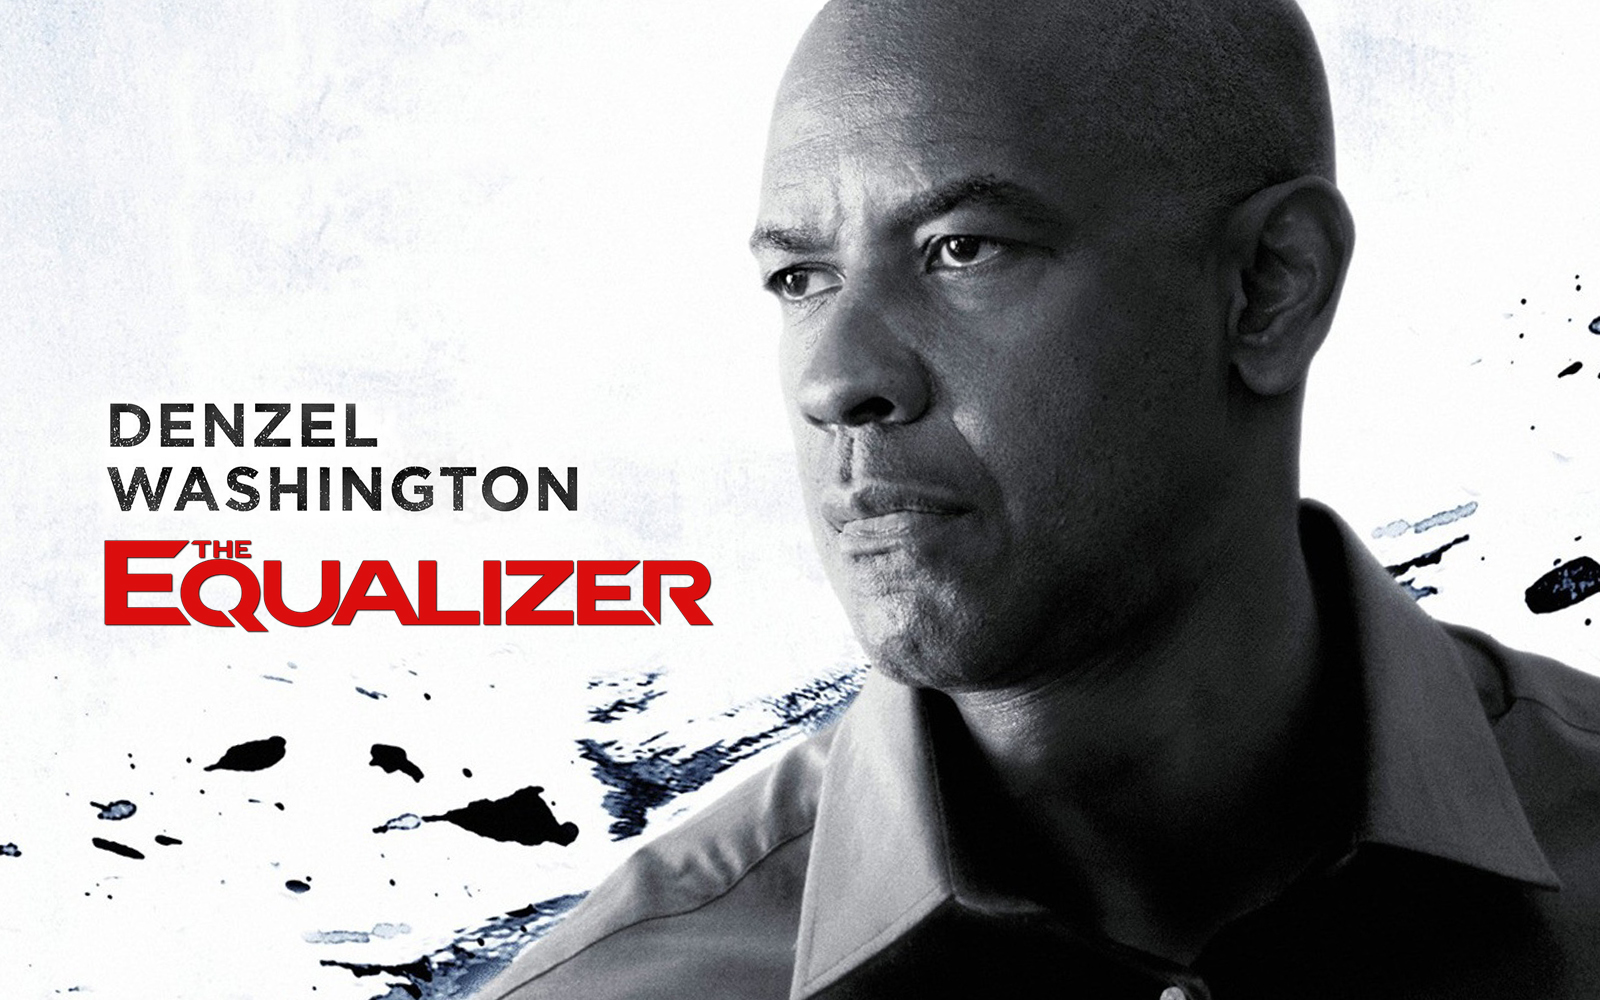 The Equalizer Desktop wallpapers